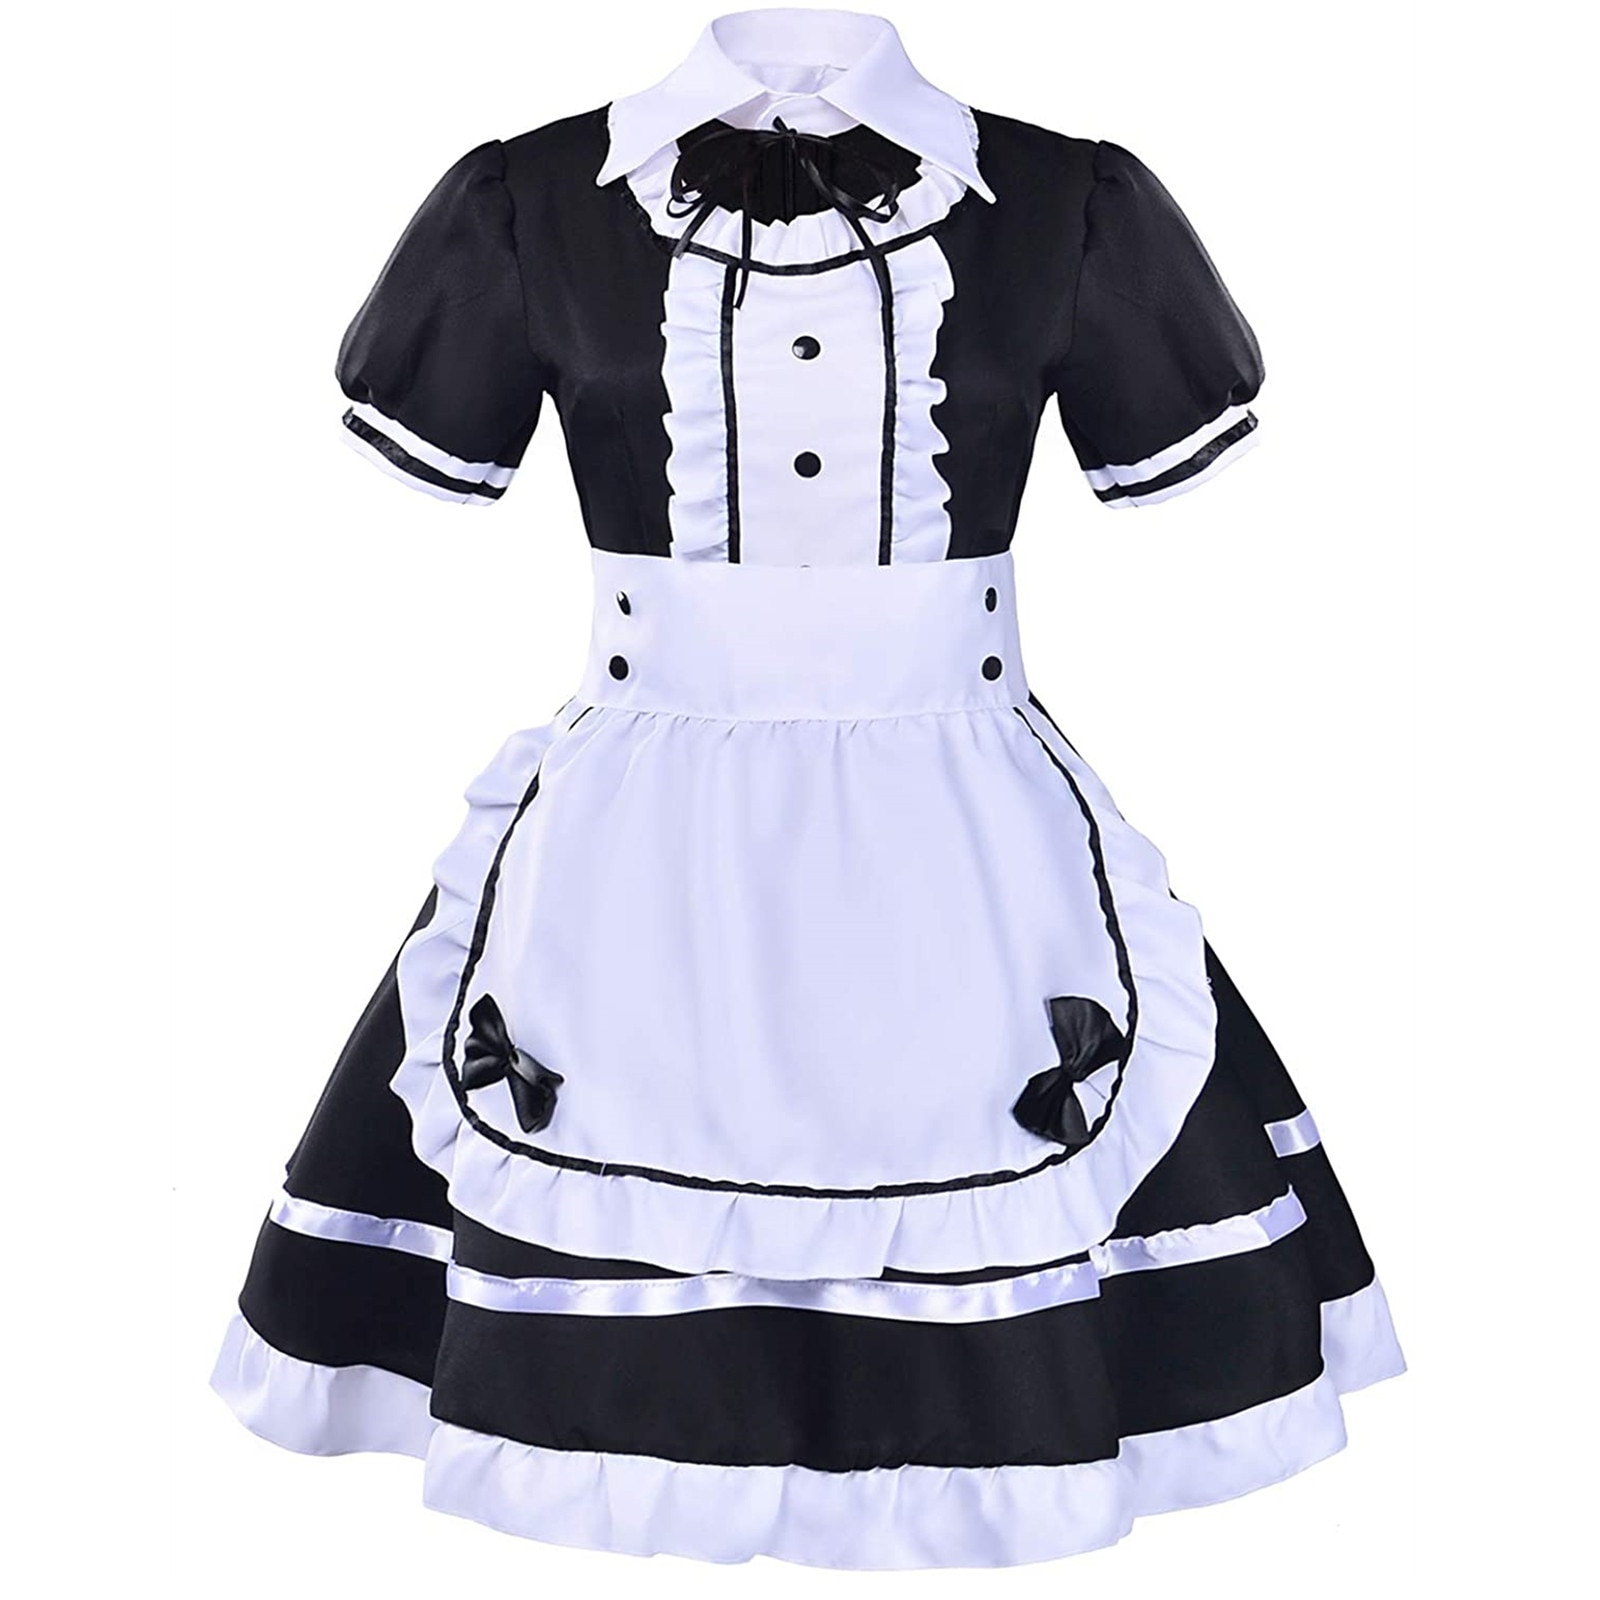 Fashion Comfortable Women Lovely Maid Cosplay Costume Animation Show Japanese Outfit Dress Clothes R